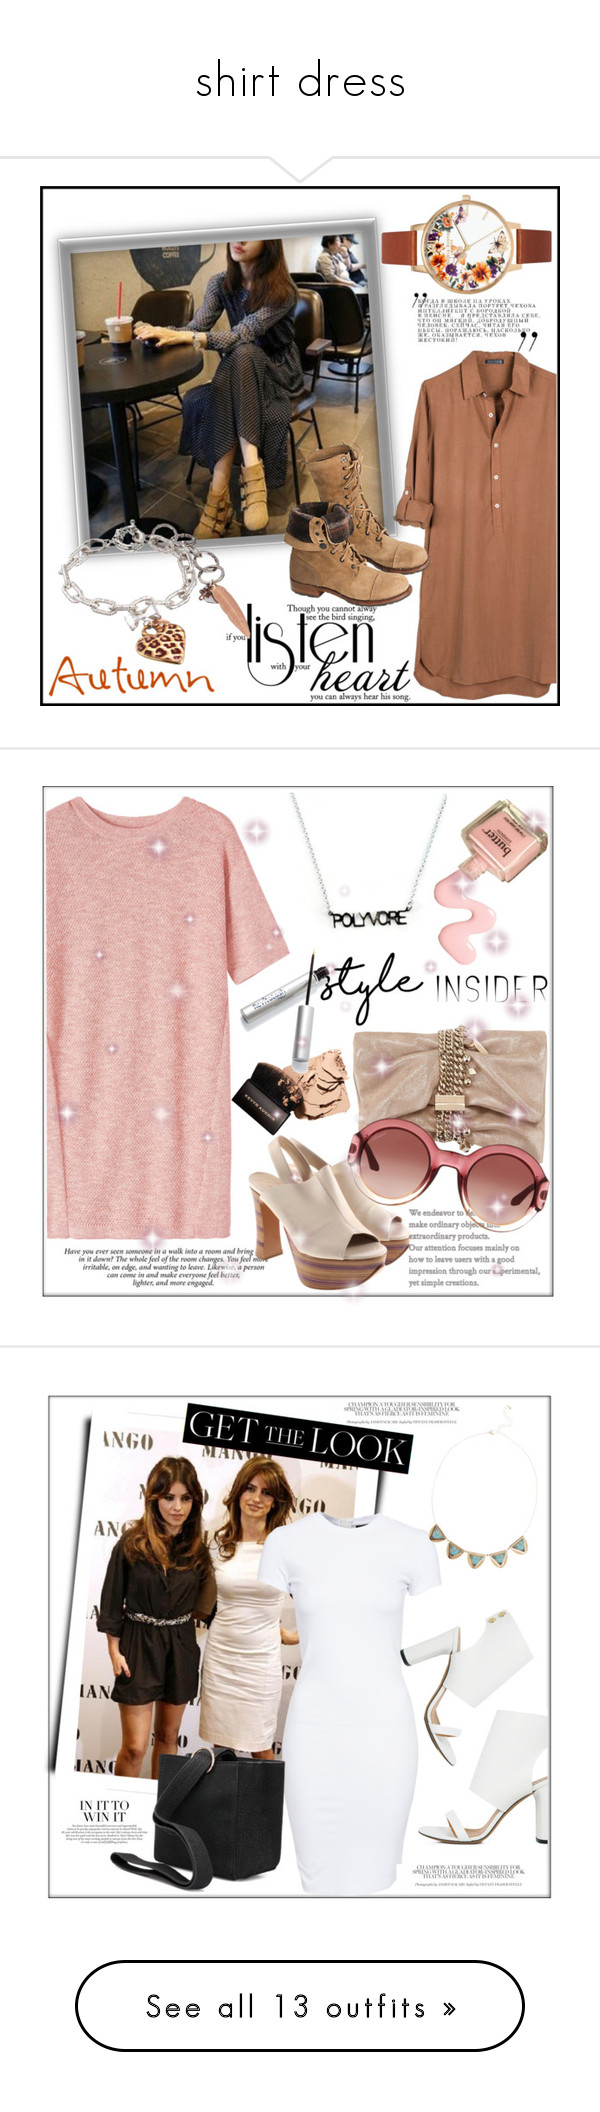 """""""shirt dress"""" by ainzme ❤ liked on Polyvore featuring United by Blue, Overland Sheepskin Co., Toast, Chloé, Jimmy Choo, Gucci, contestentry, styleinsider, IRO and SELECTED"""